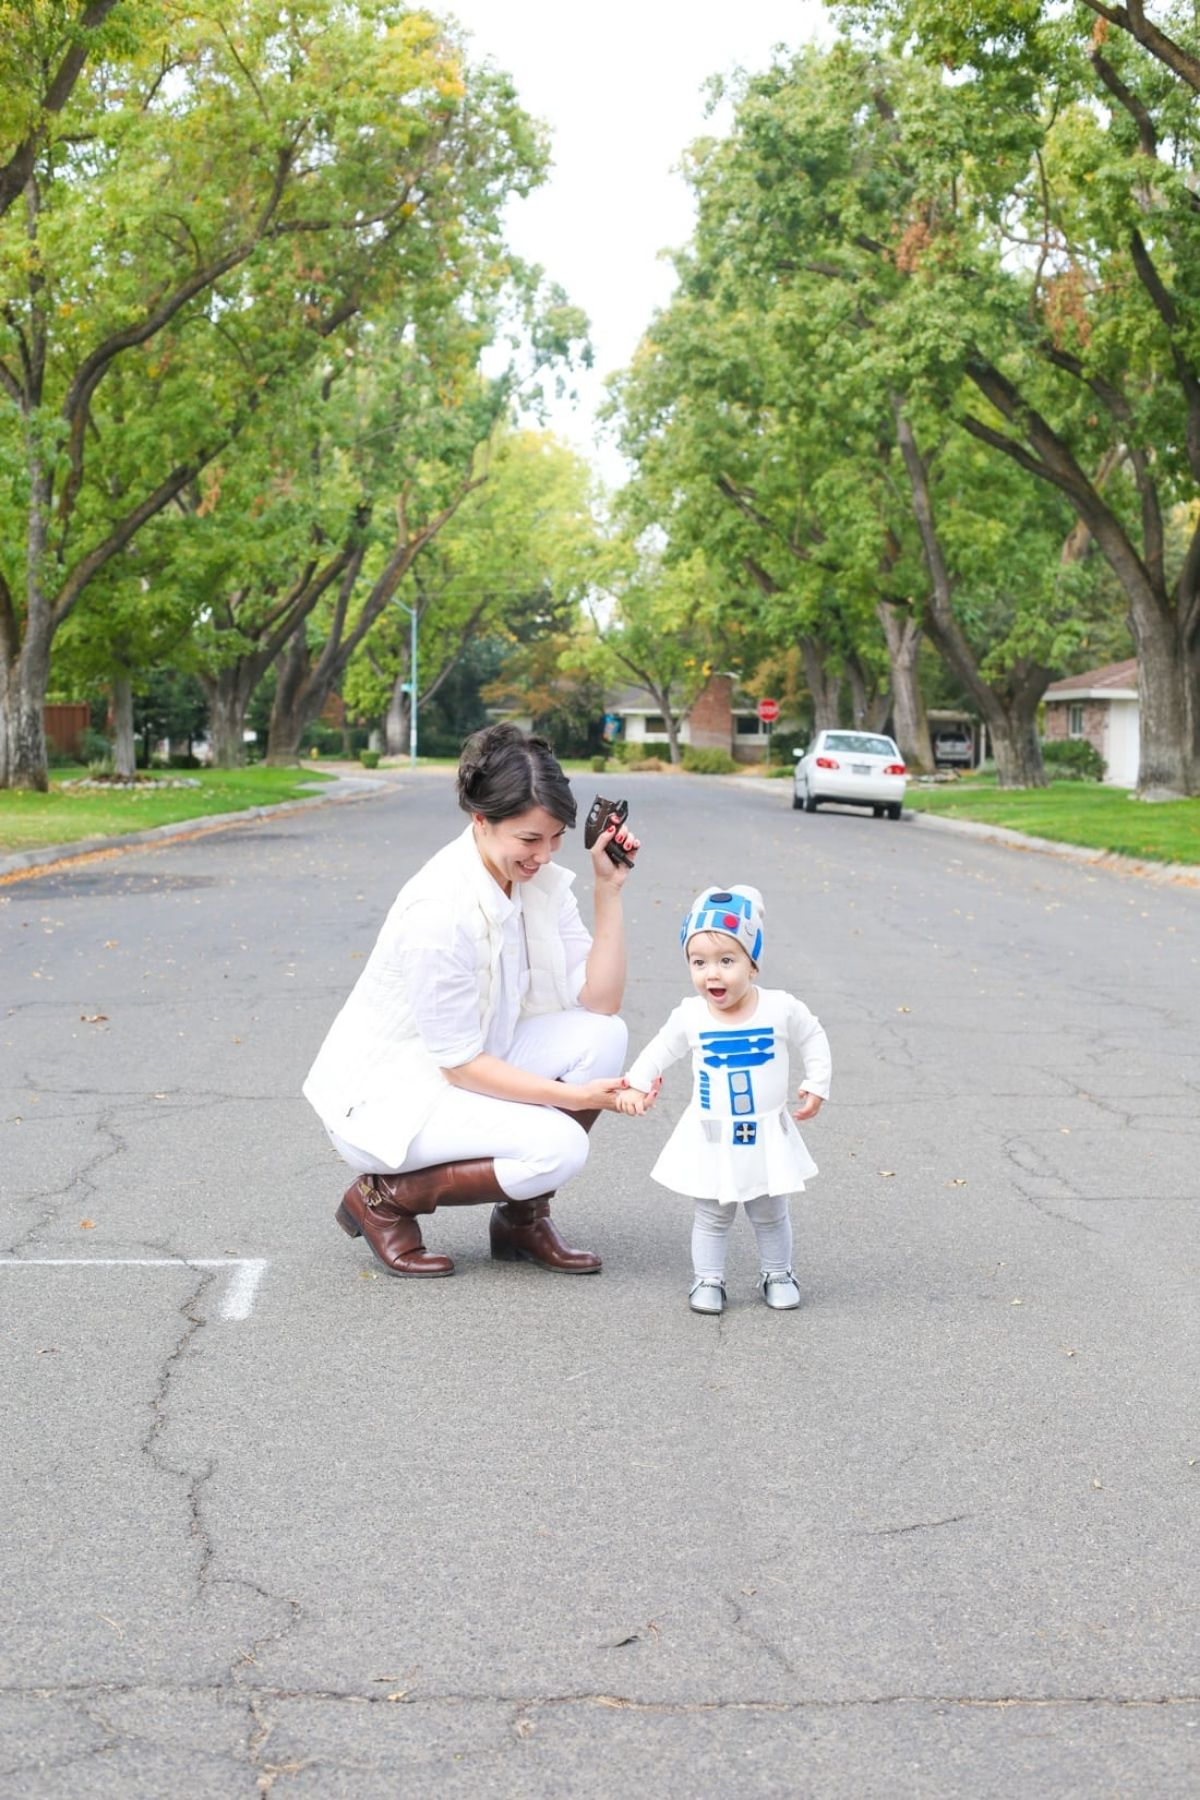 Leia and R2D2 costumes